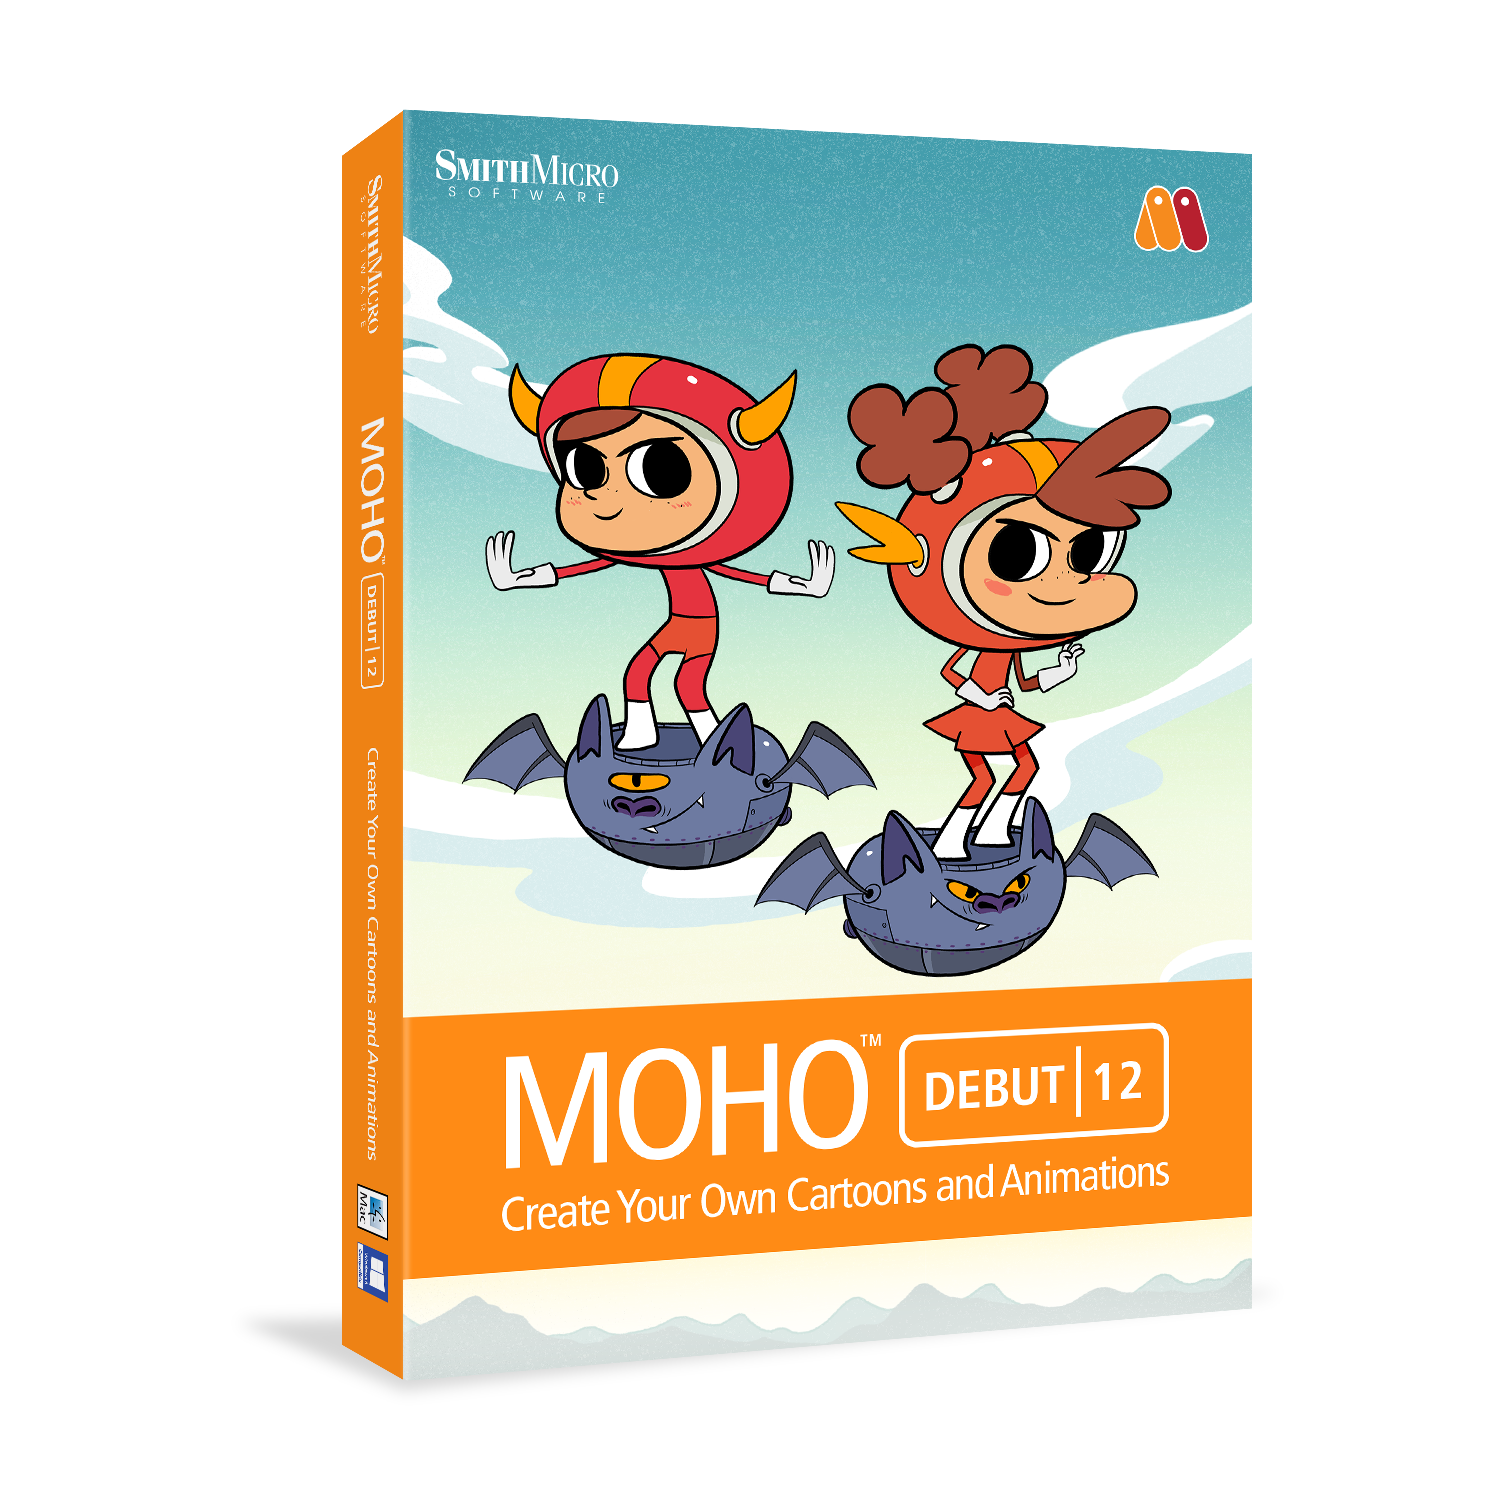 moho-debut-12-2d-animation-software-download-for-windows-download-2